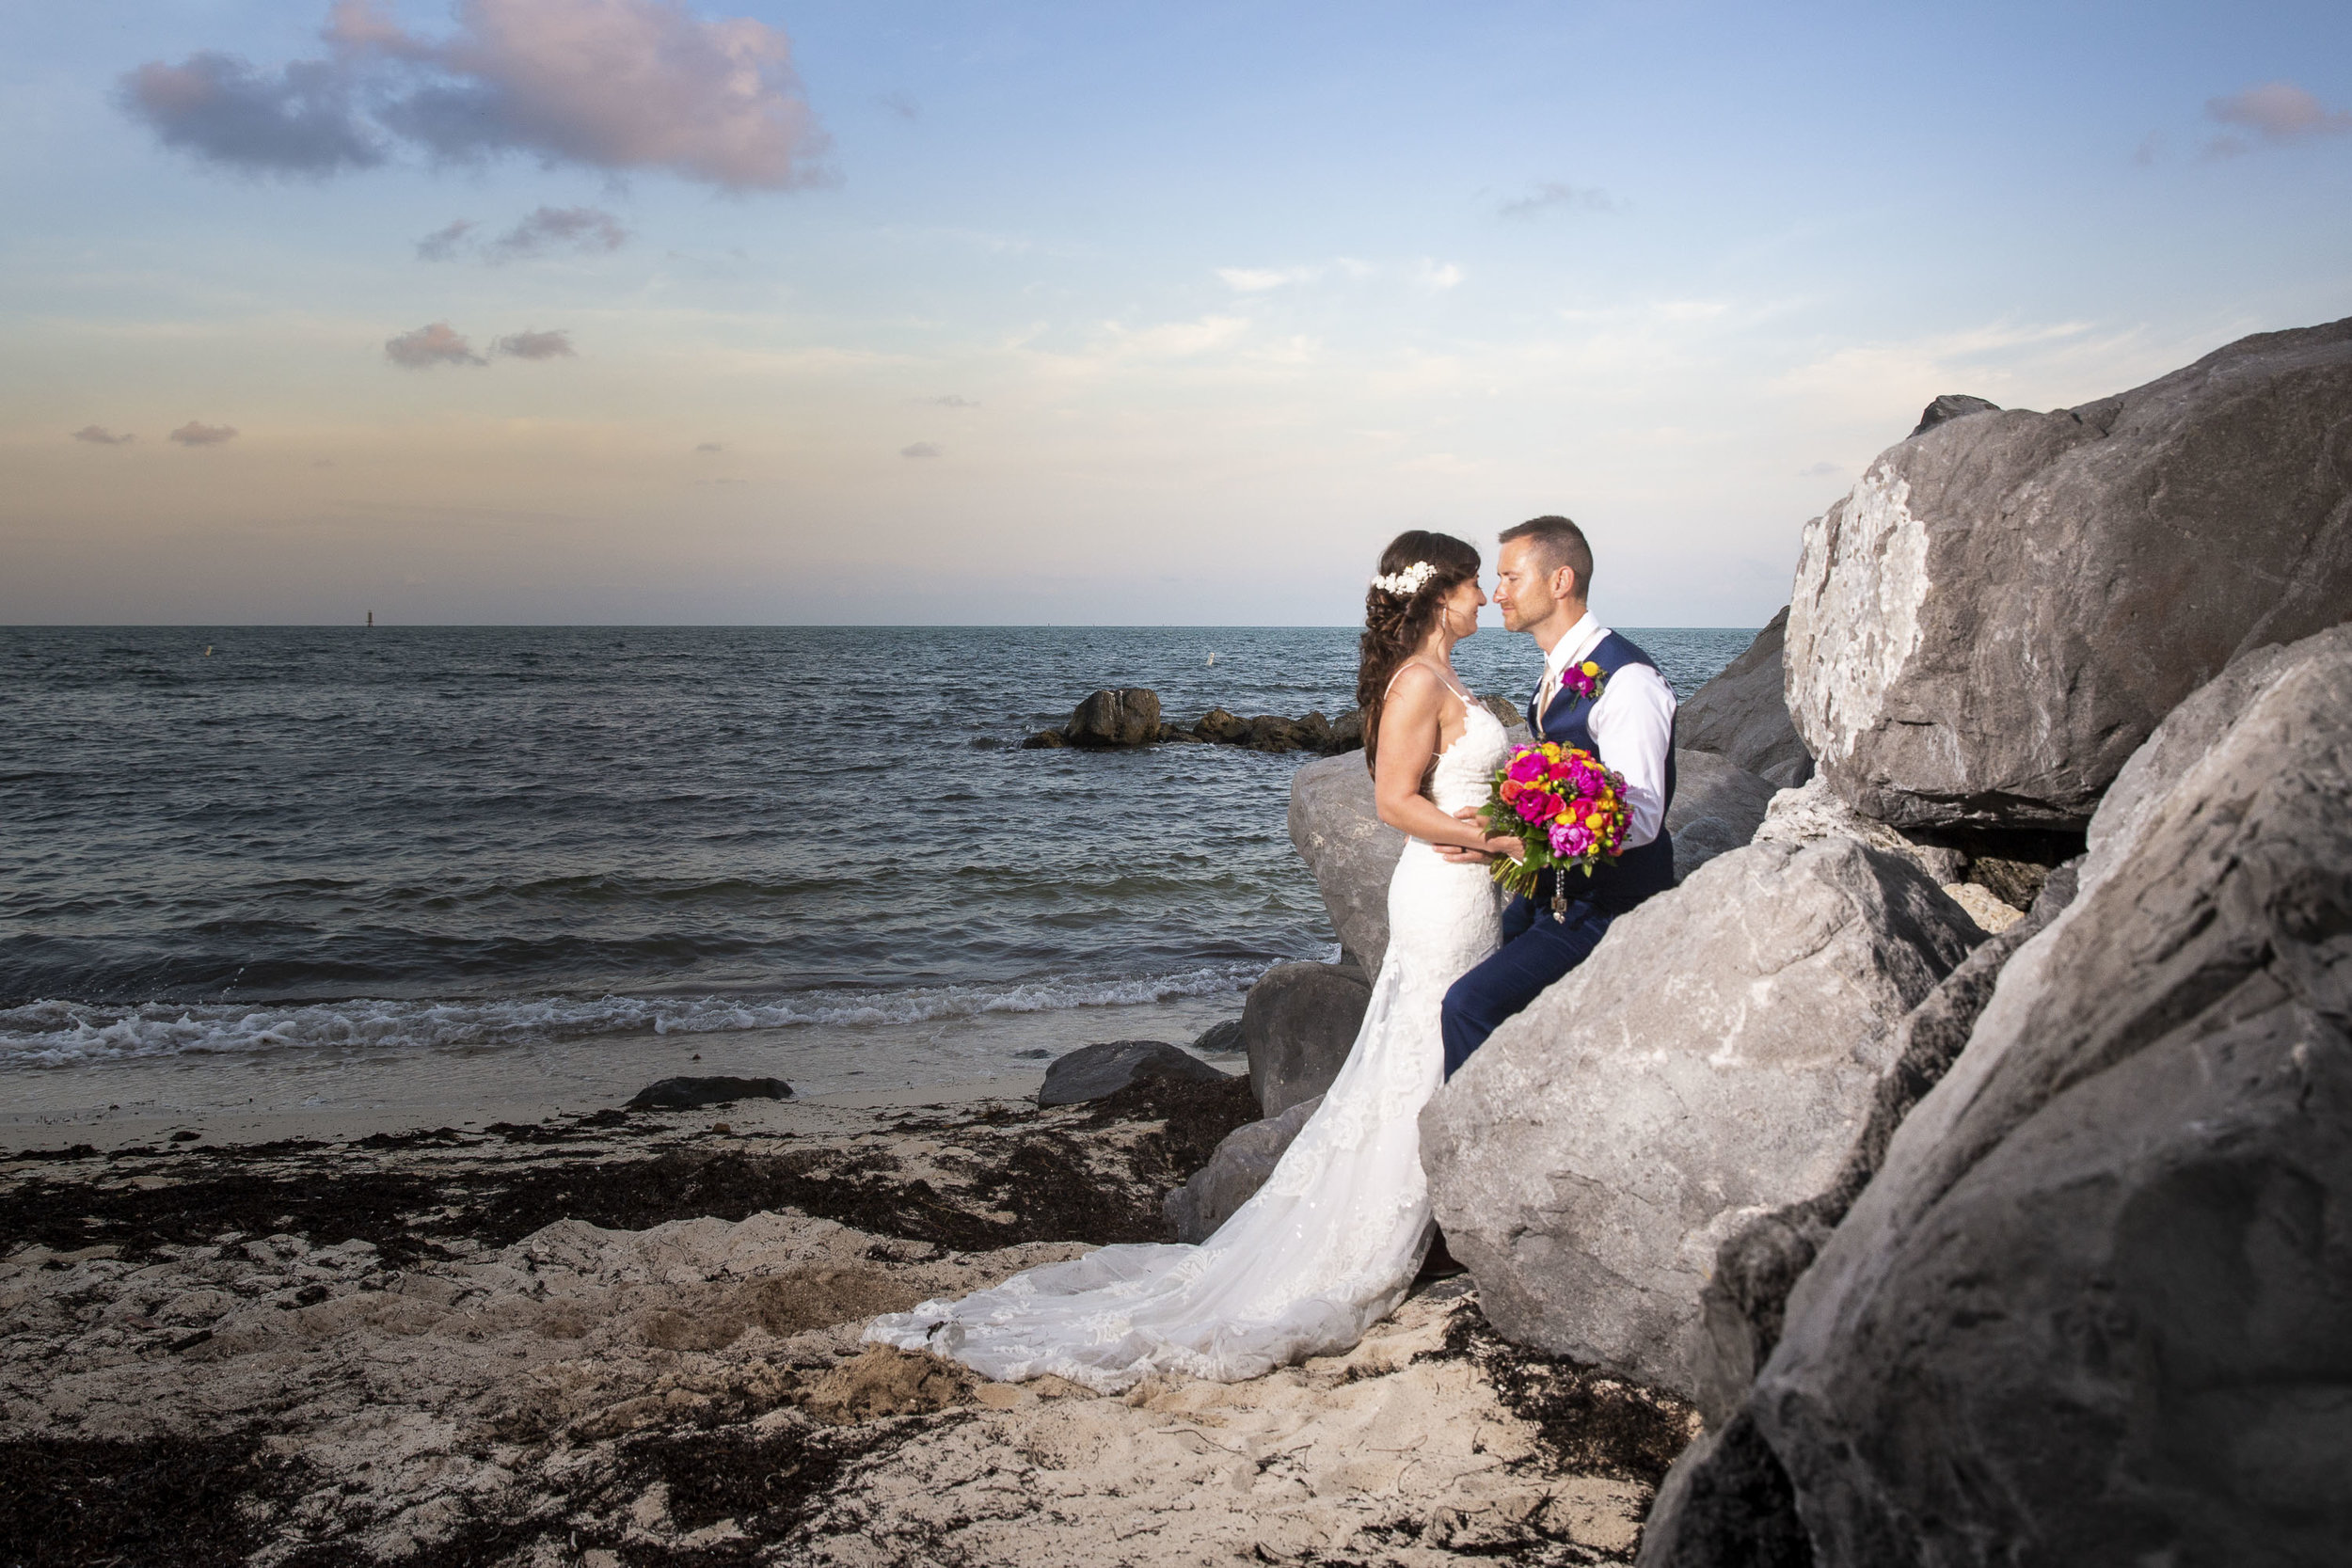 Key West wedding photographer captures couple on the rock jetty of the beach